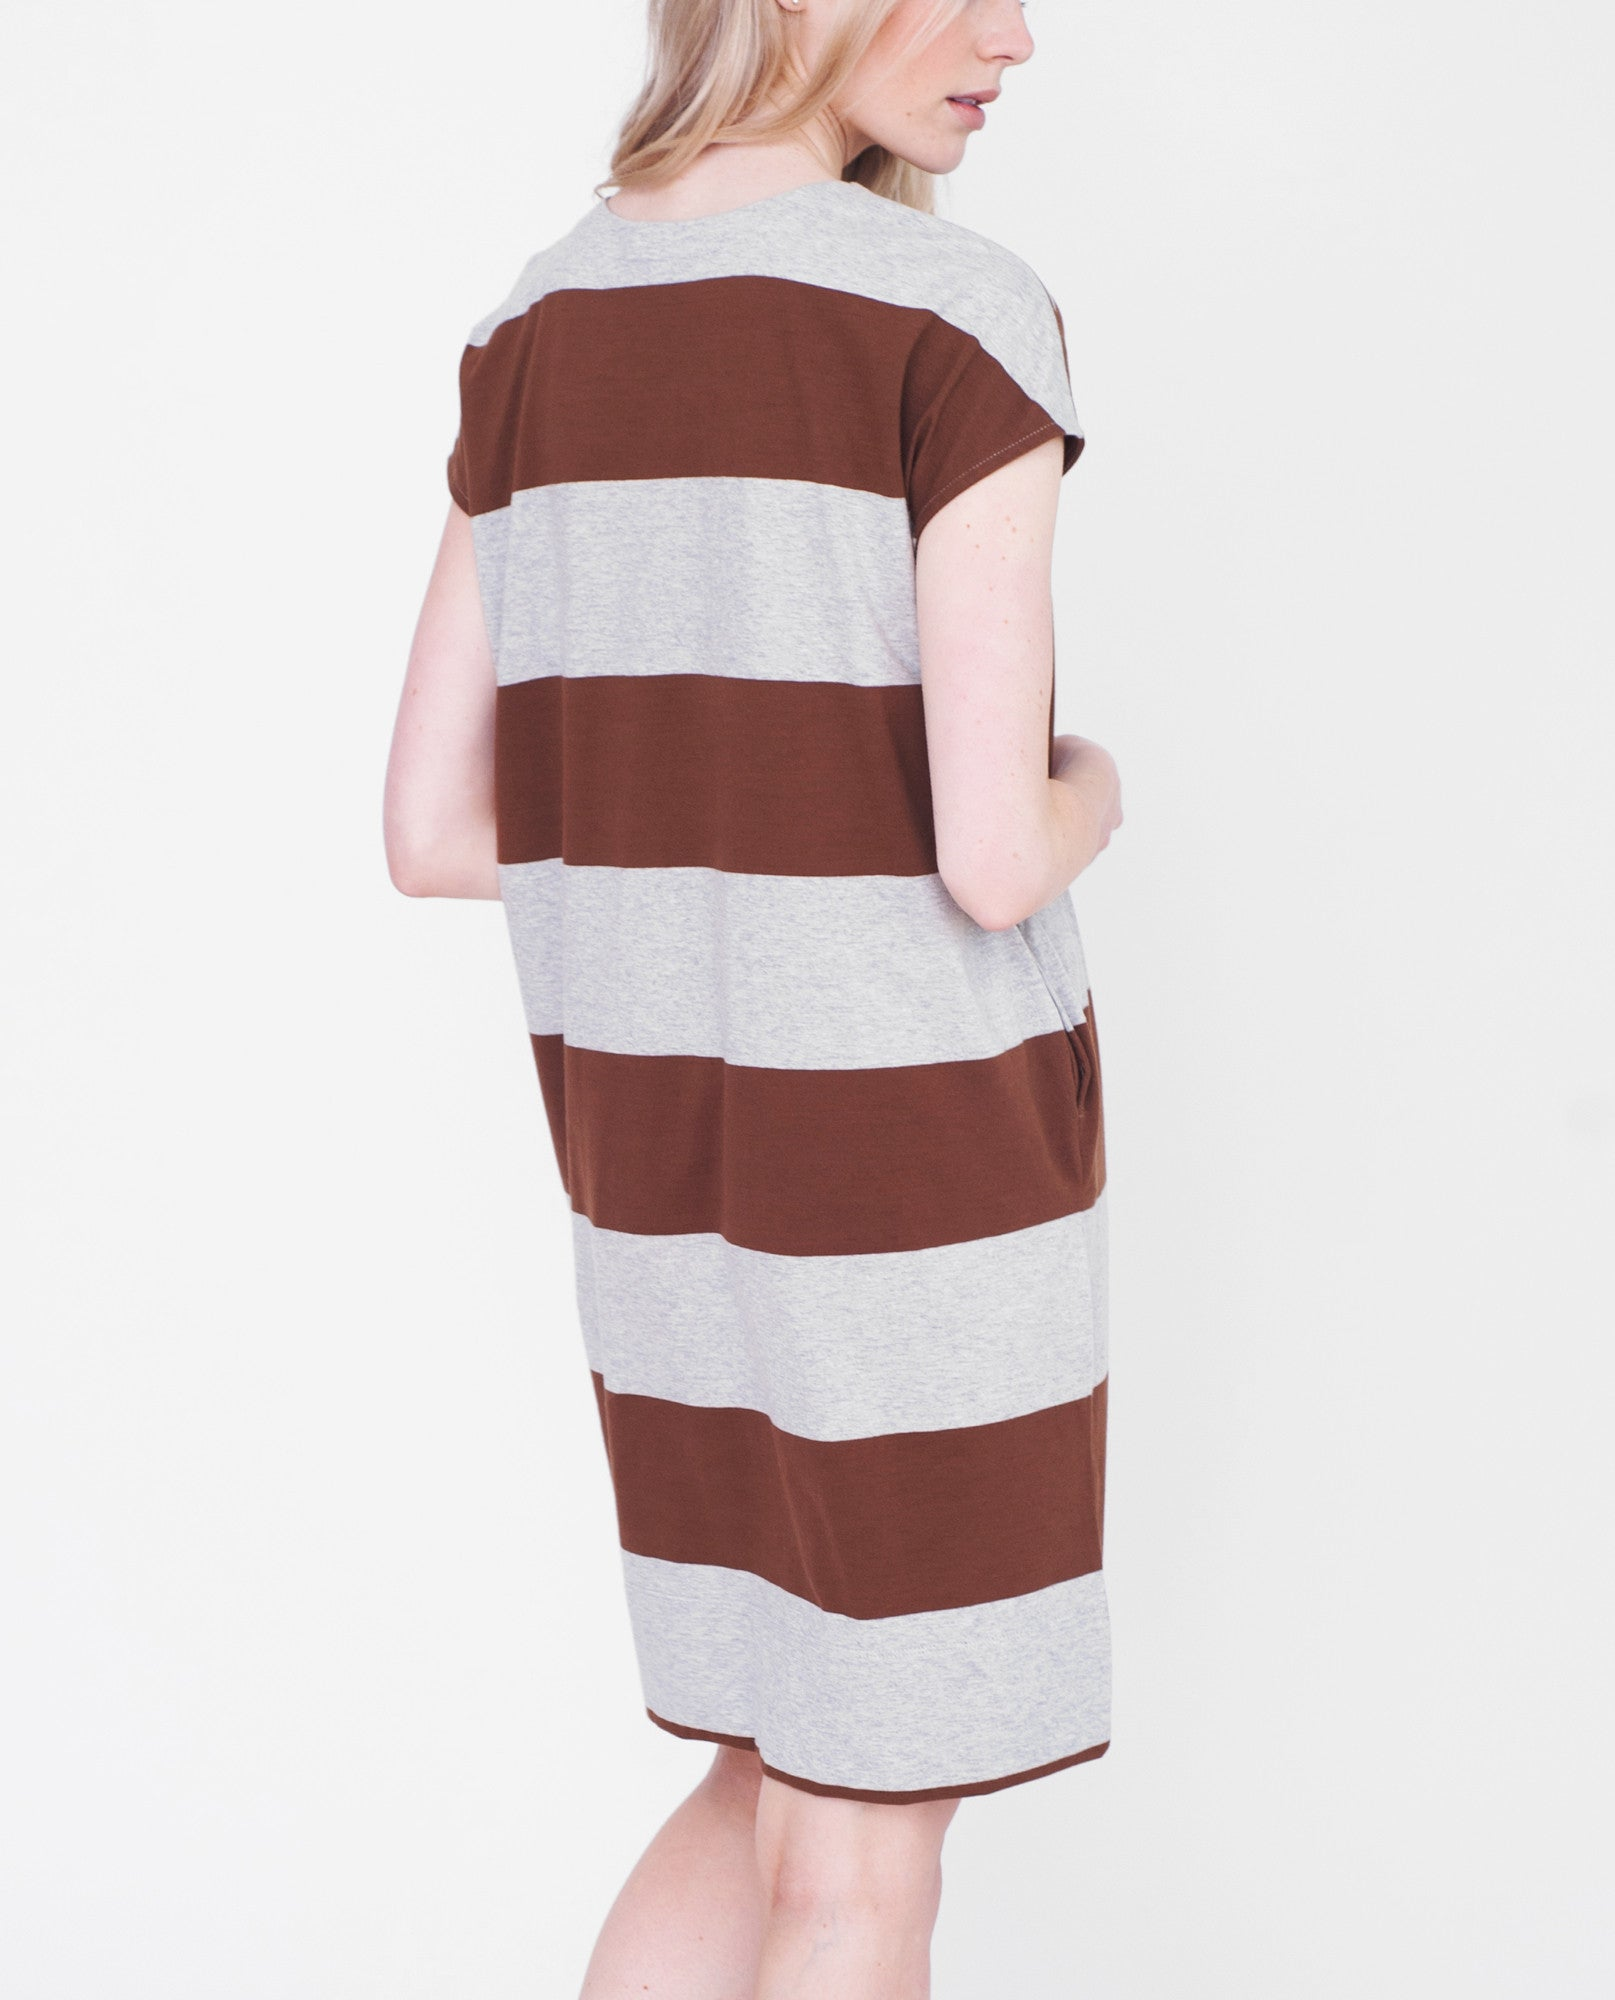 AUBREY Organic Cotton Dress In Light Grey And Brown